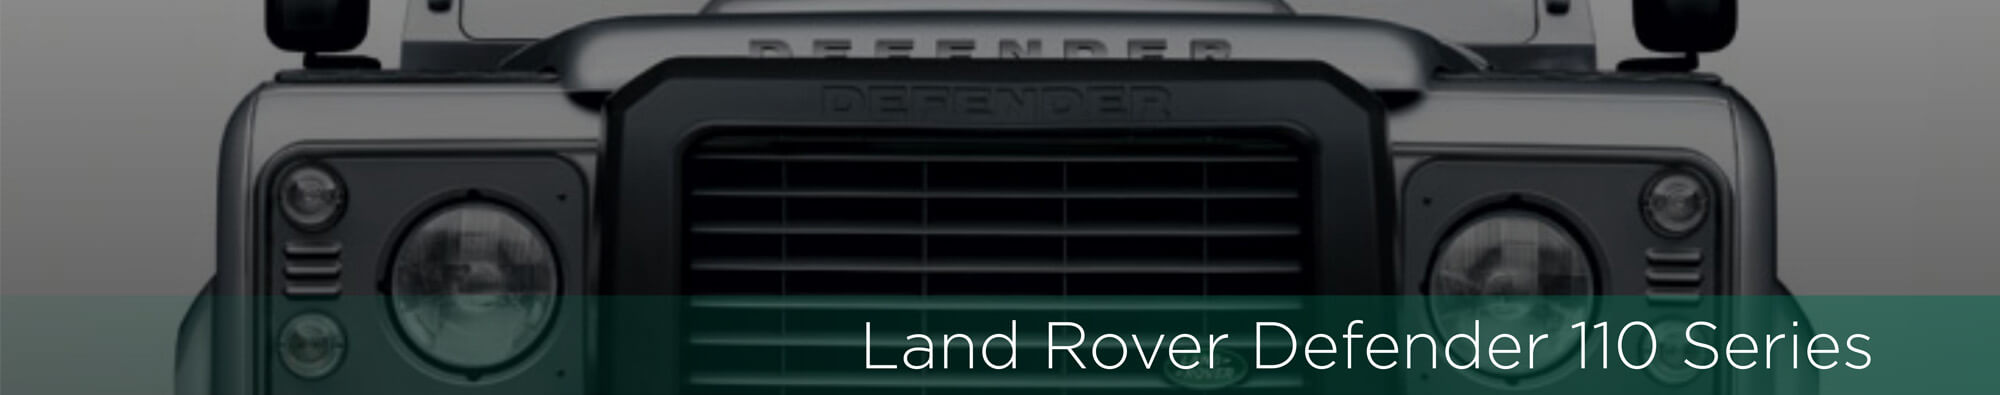 Land Rover Defender 110 - Banner Exotic Suv